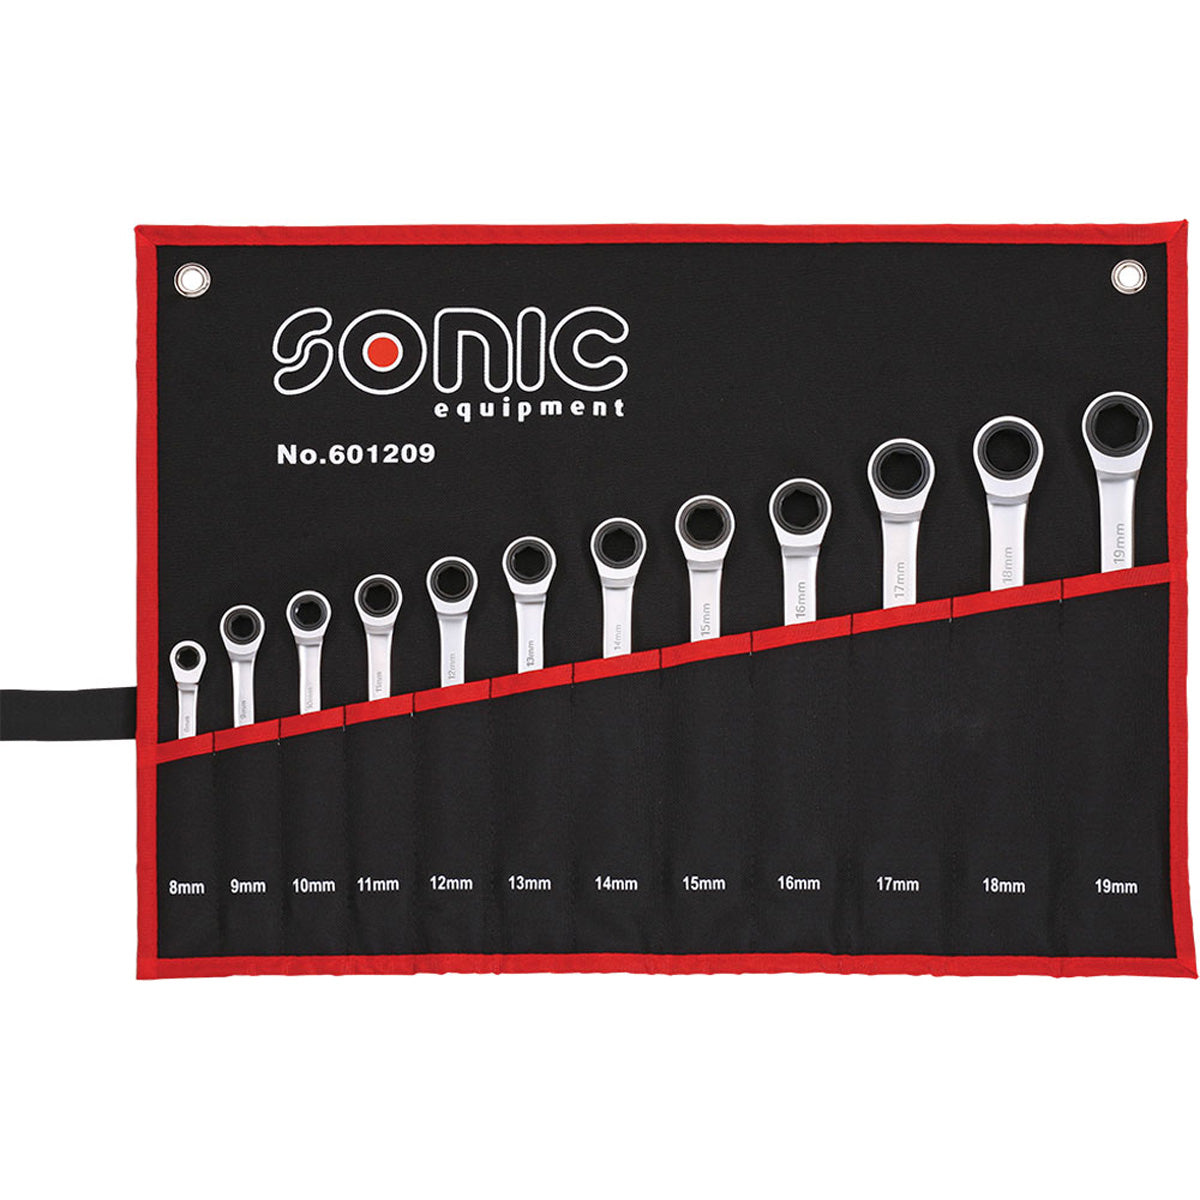 Sonic Tools 6pt Flat Ratcheting Wrench 12pcs Harware Tools (BRAND NEW)